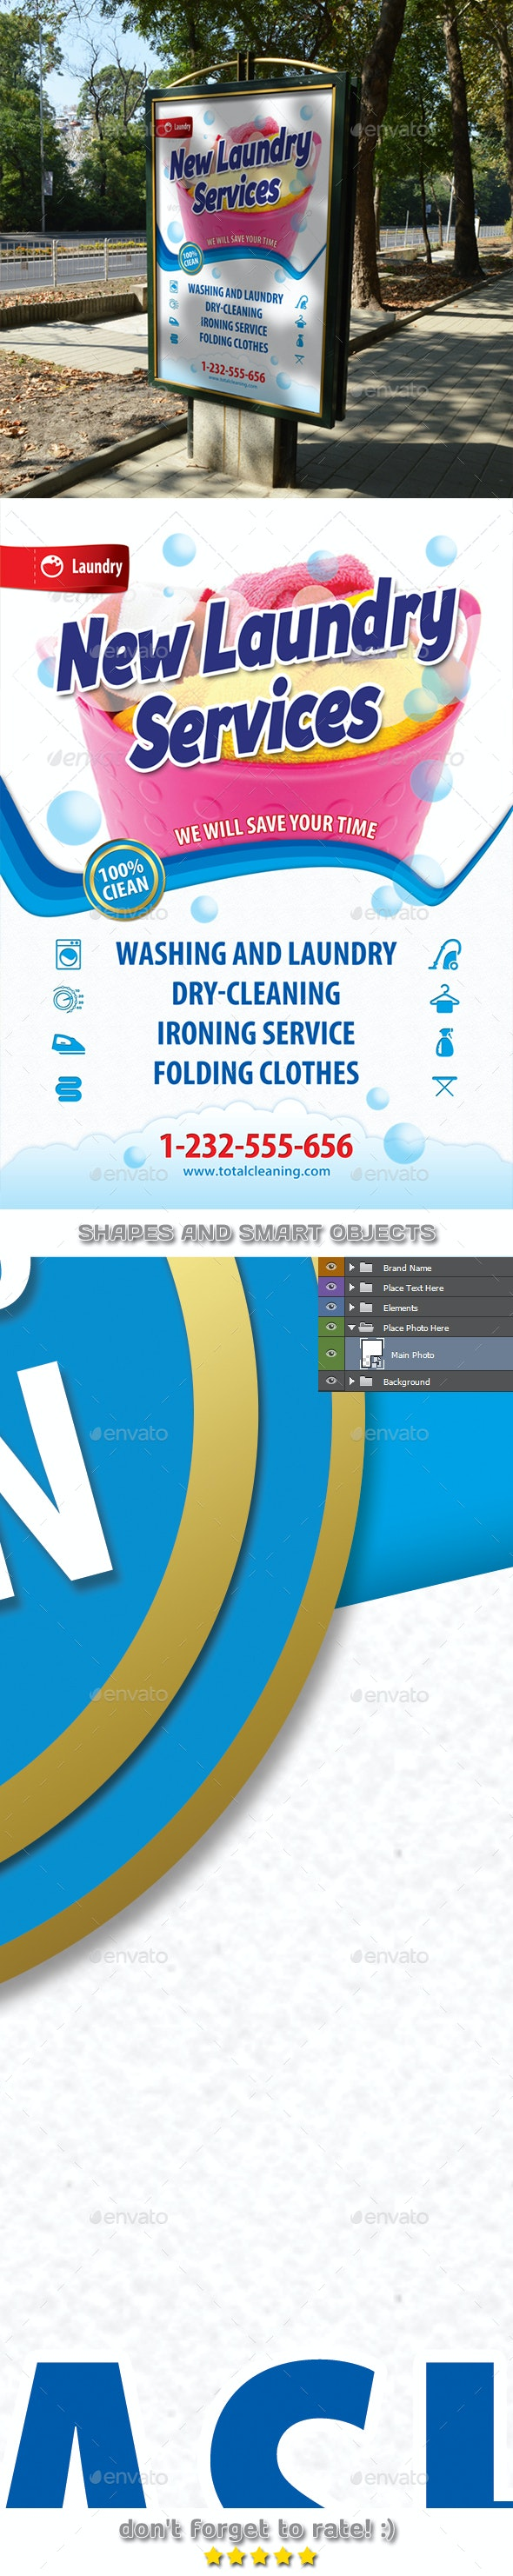 New Laundry Services Poster Template 47 - Signage Print Templates